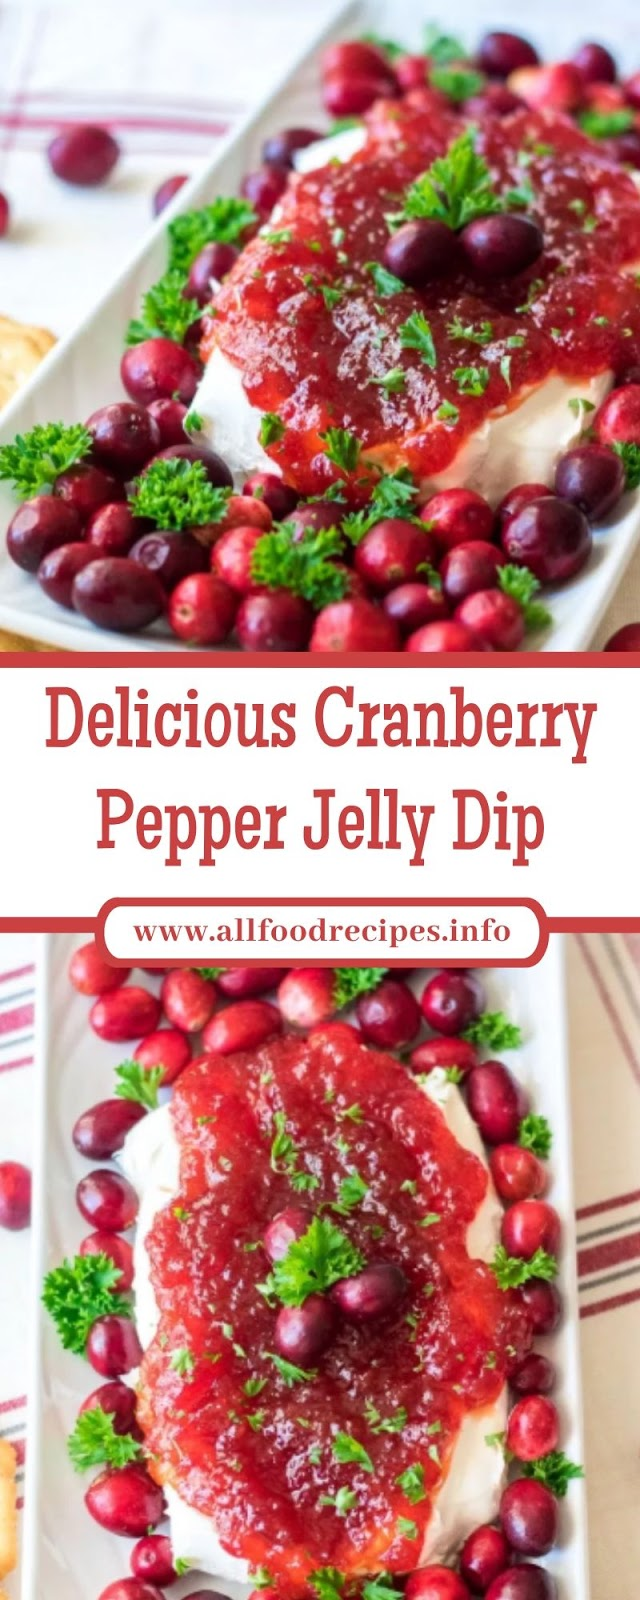 Delicious Cranberry Pepper Jelly Dip